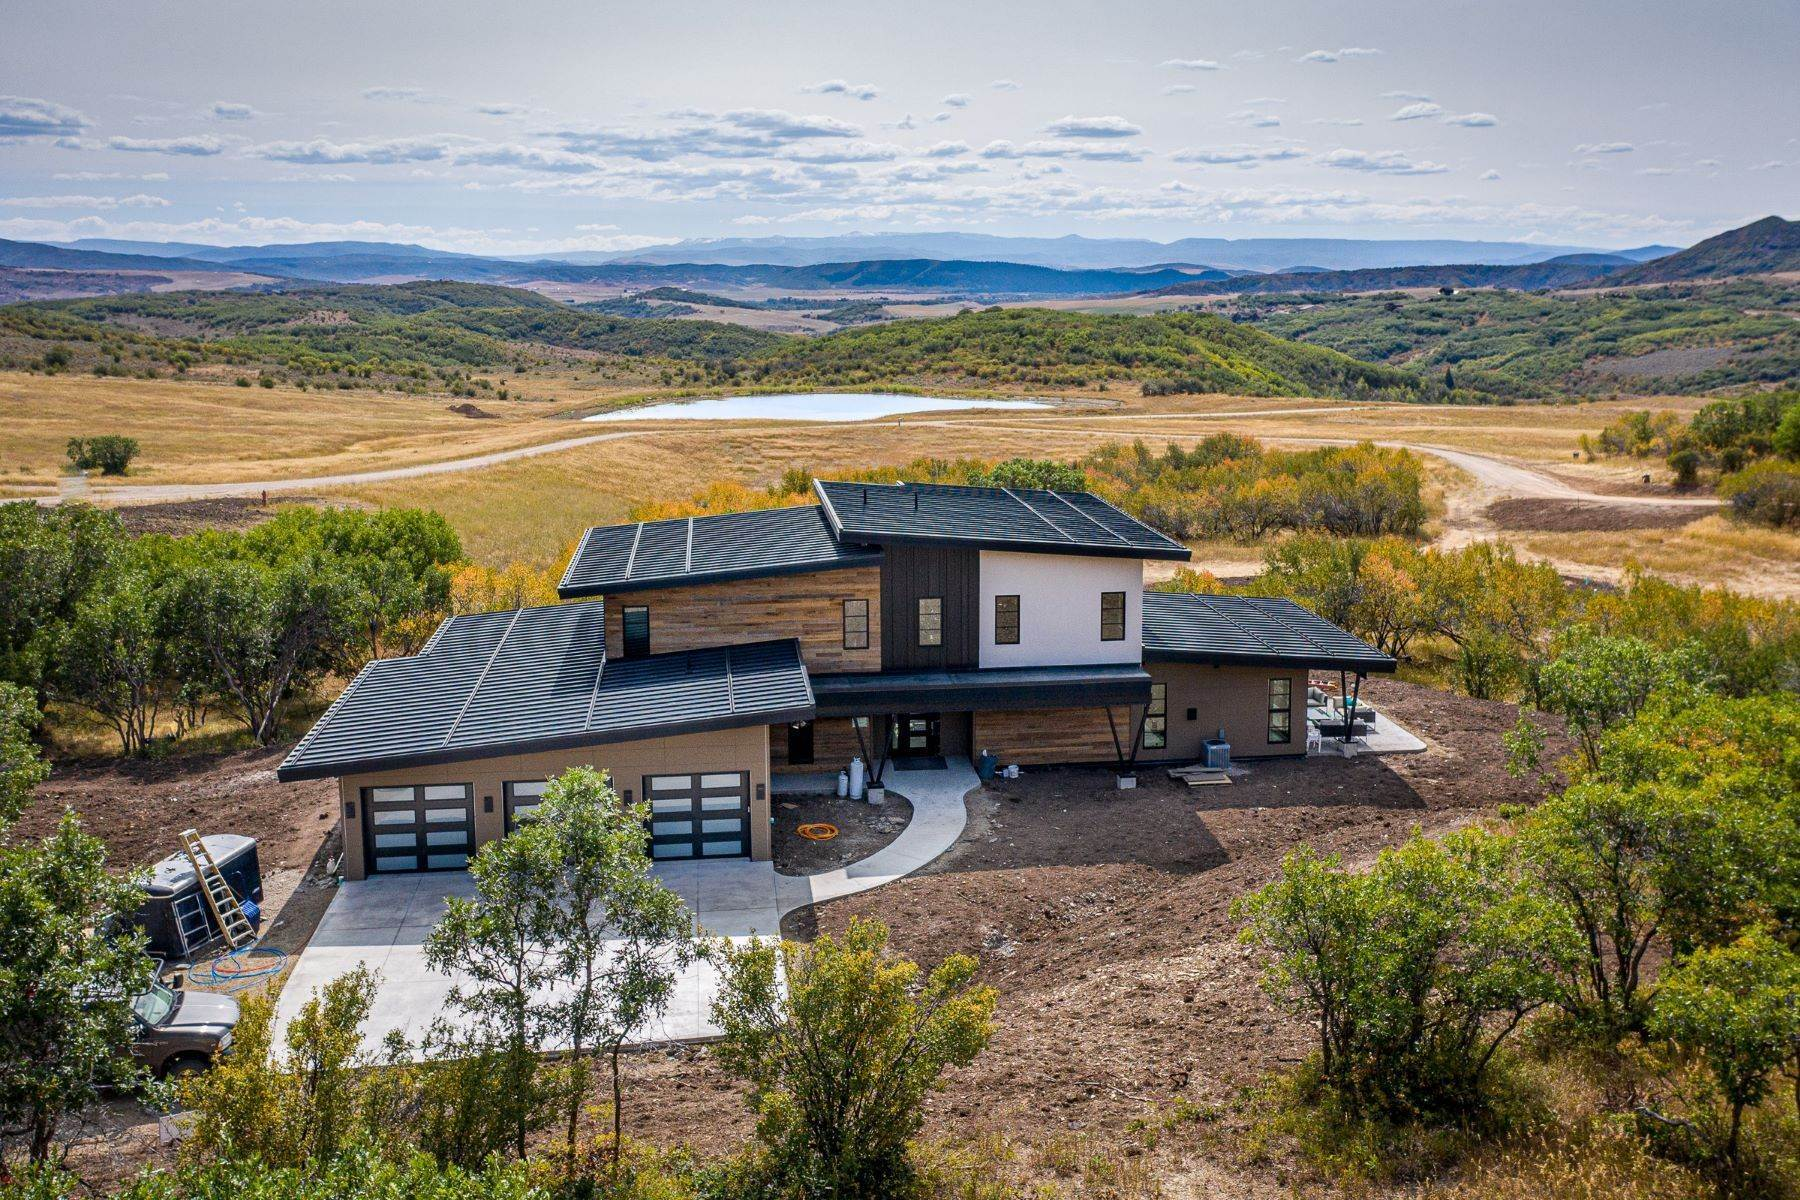 Single Family Homes for Sale at Mountain Modern with Acreage 45233 Four Seasons Way Steamboat Springs, Colorado 80487 United States